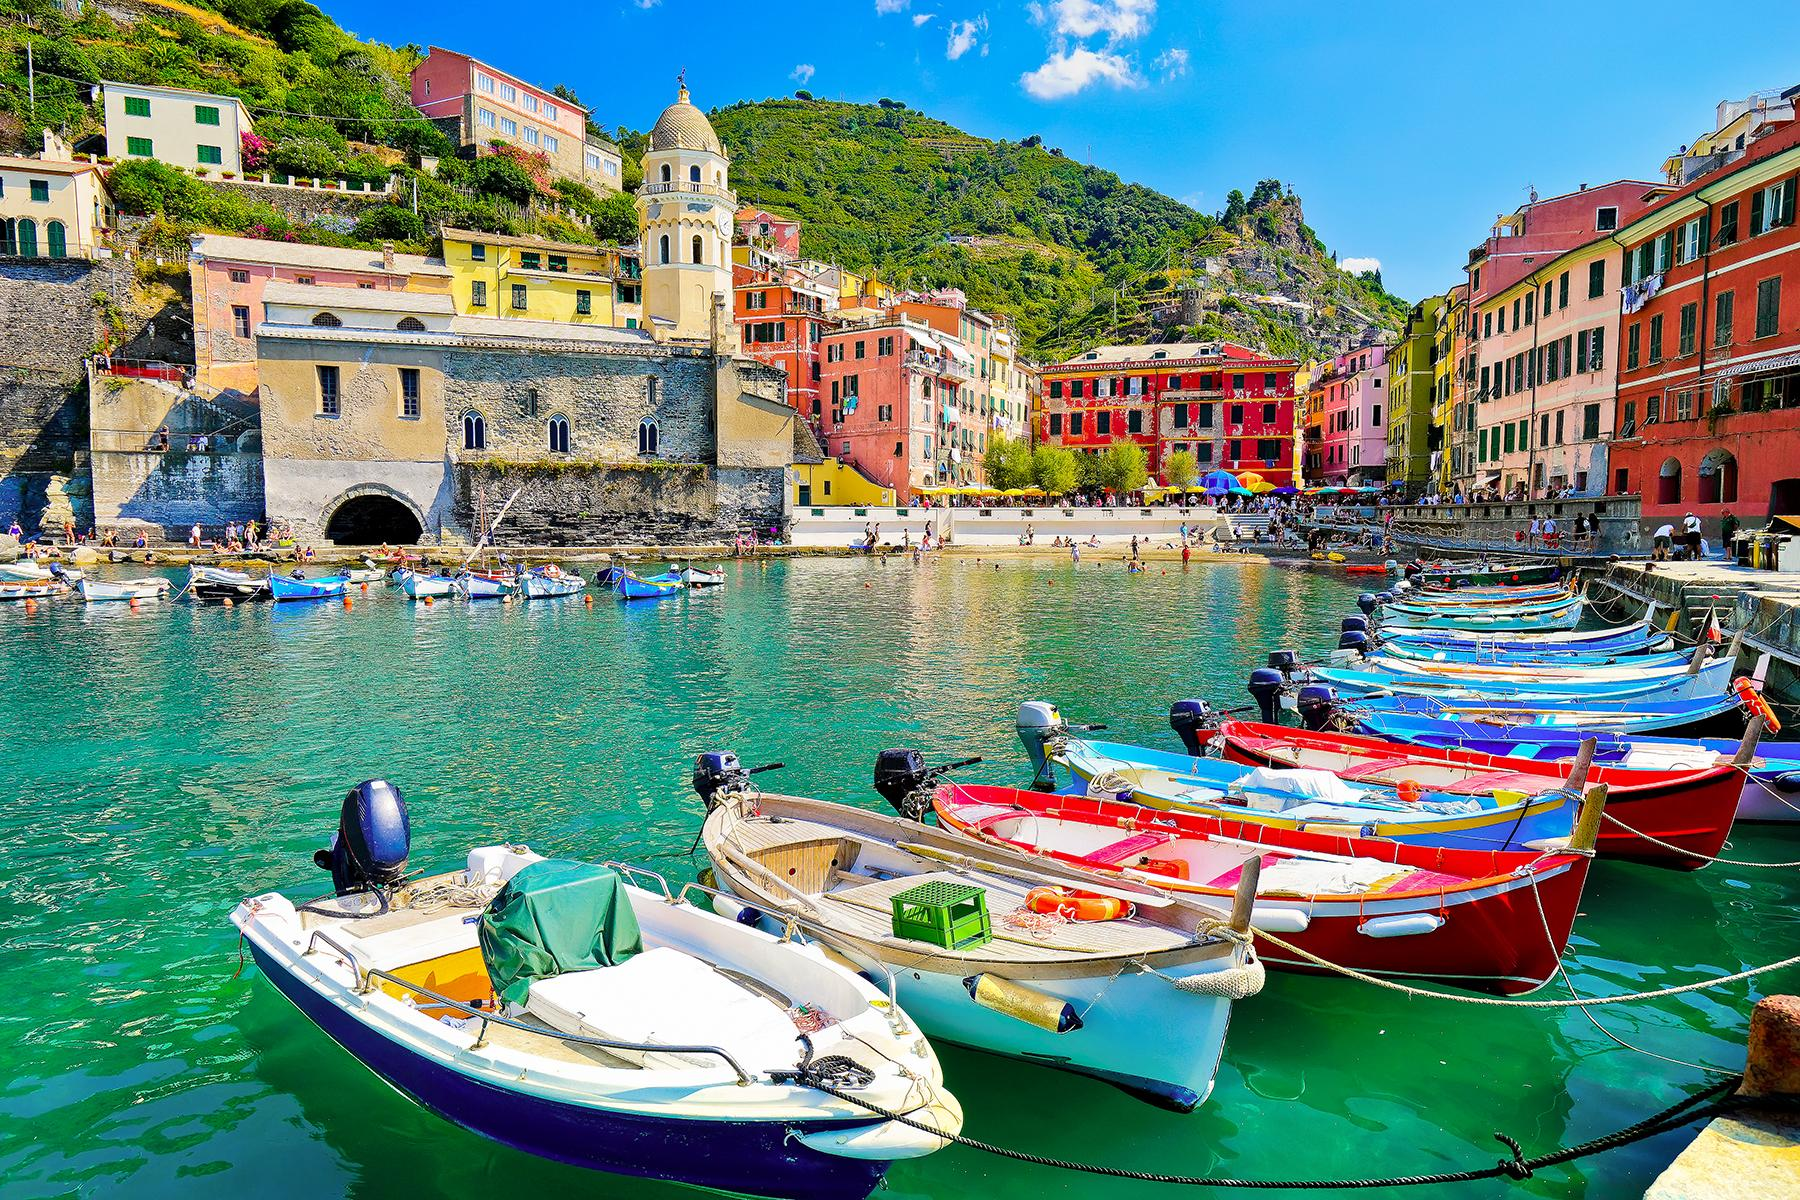 10,000 Bulgarians Had Made Reservations For Trips To Italy By The End Of June